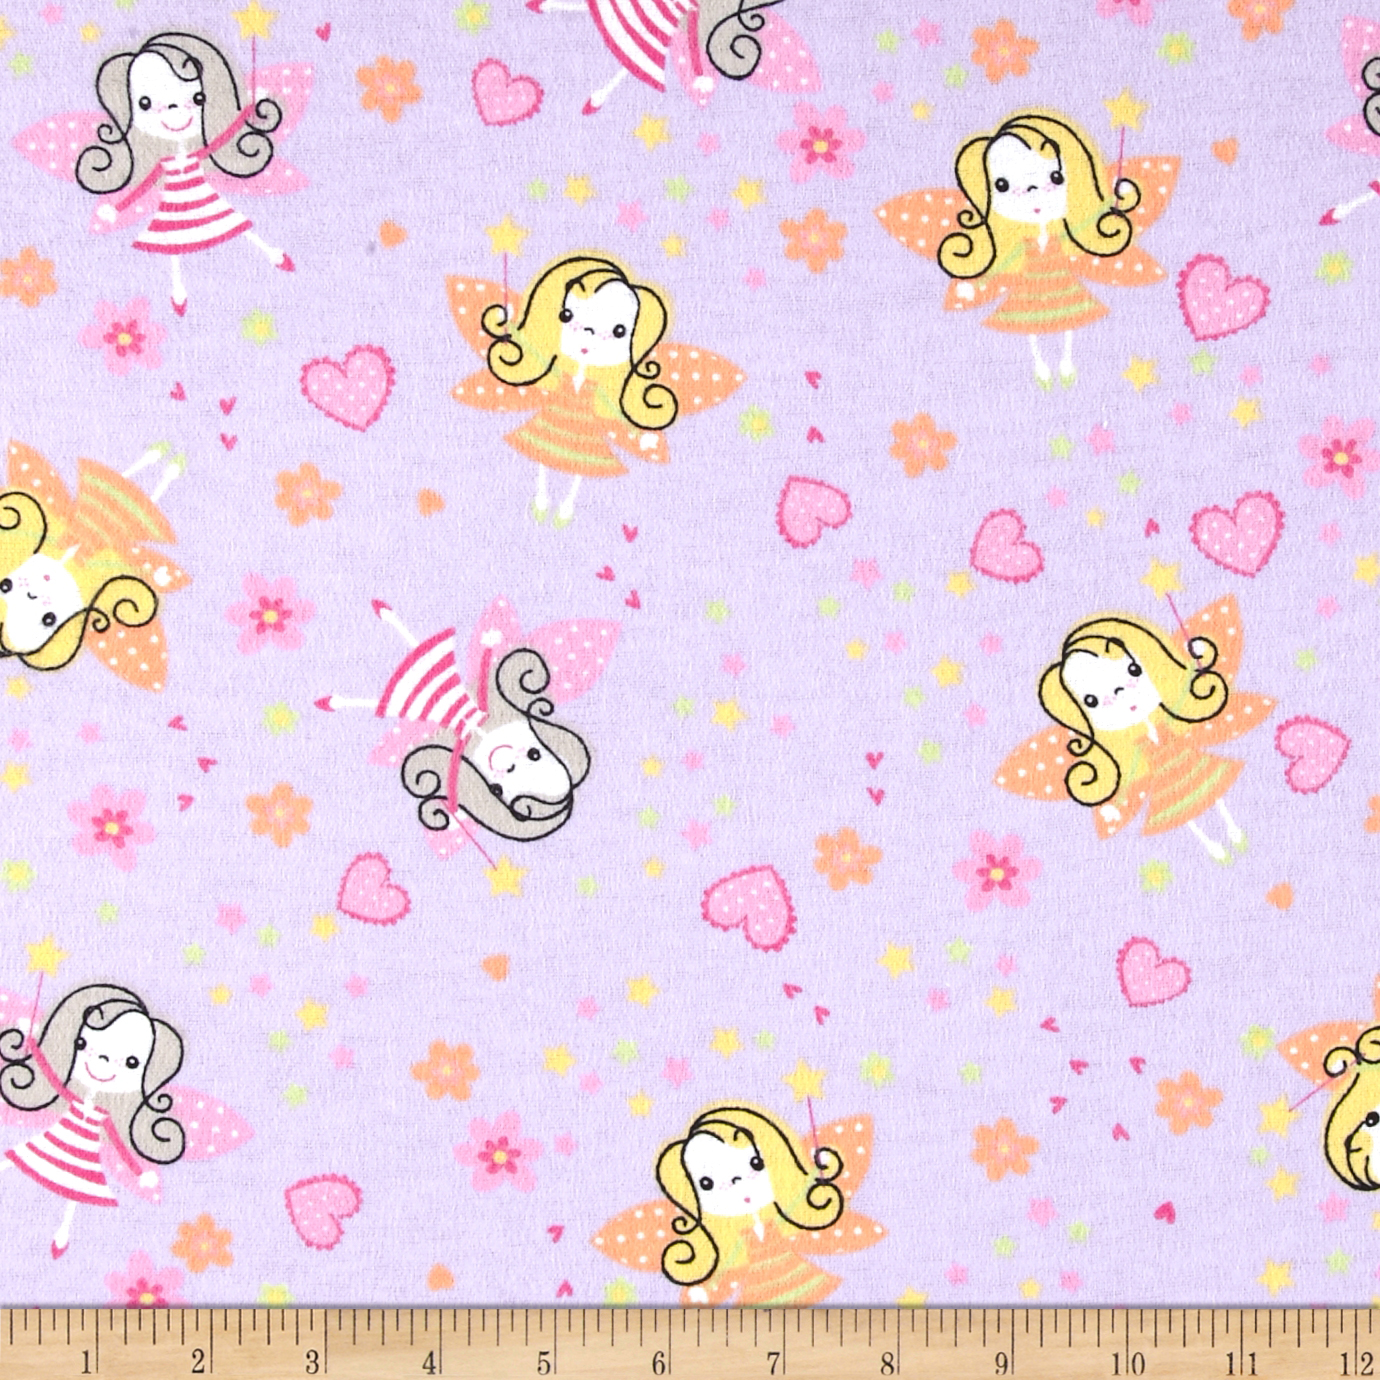 Flannel Prints Fairies Lilac Fabric by Newcastle in USA